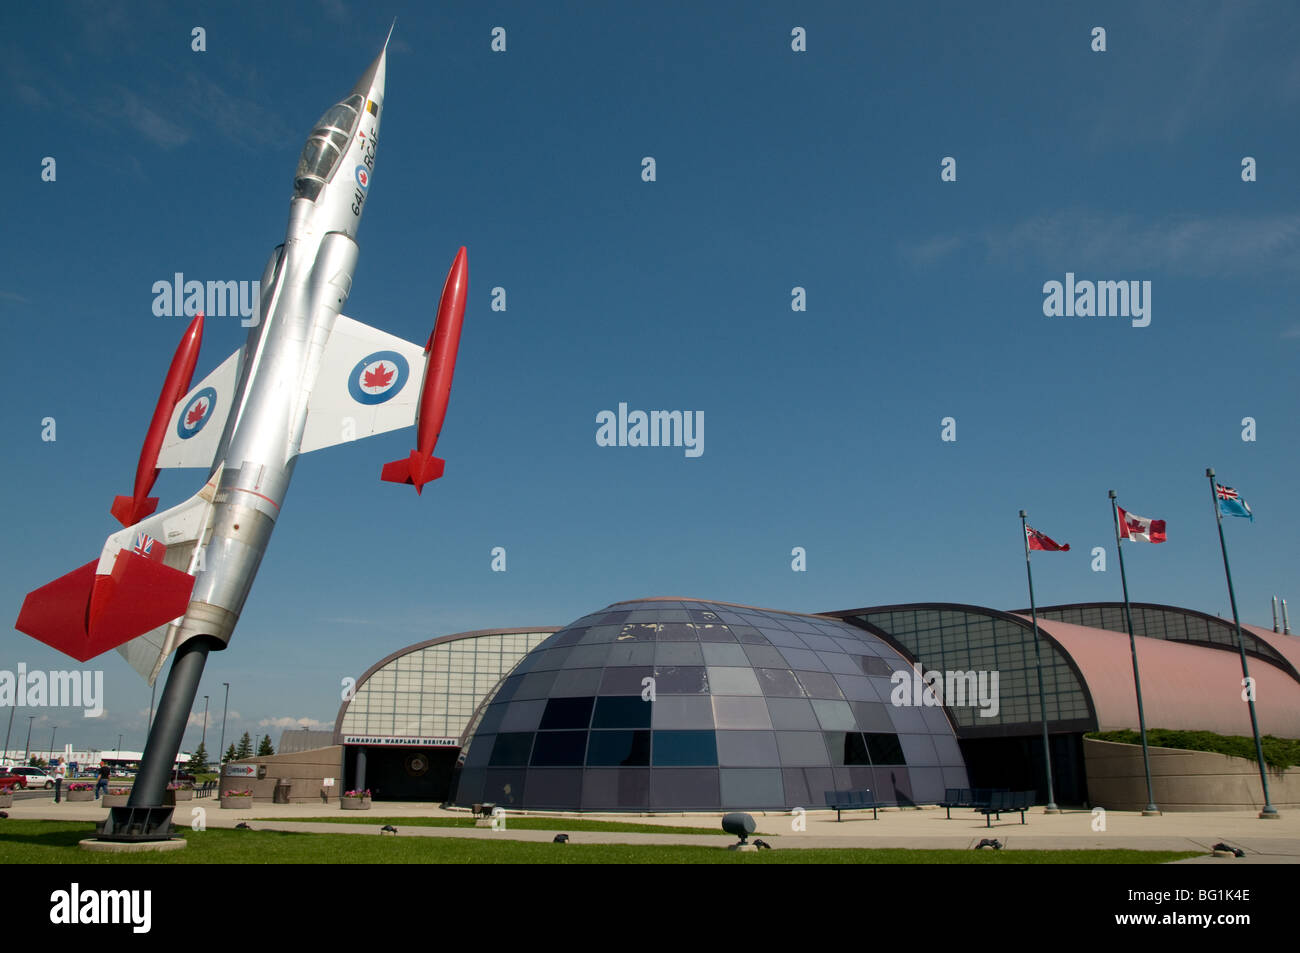 A Lockheed F104 Starfighter is mounted facing to the sky outside the Canadian Warplane Heritage museum, Mount Hope, - Stock Image